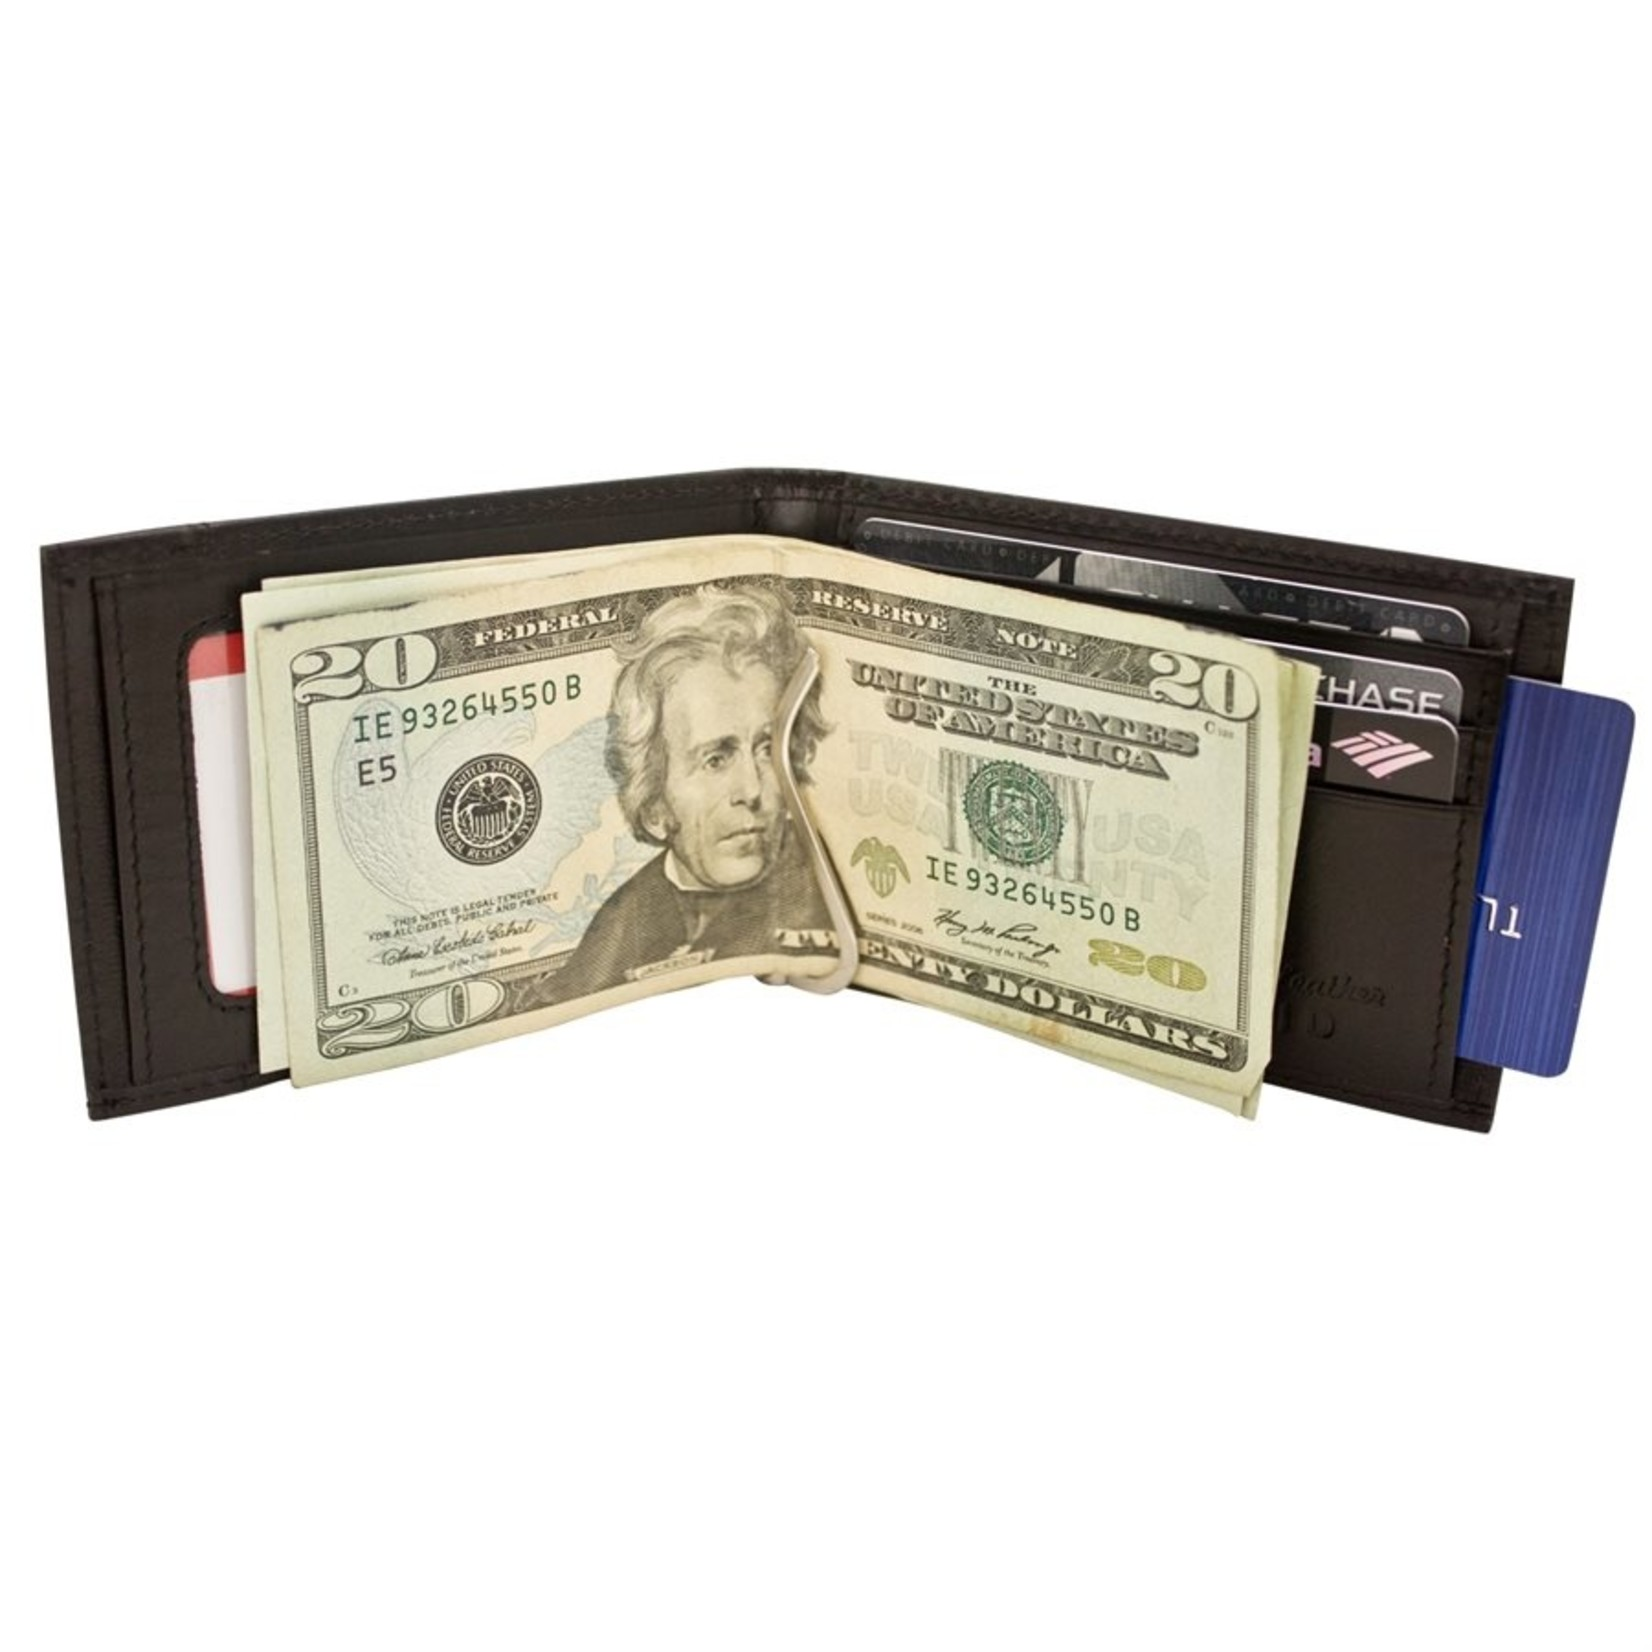 Leather Handbags and Accessories 7719 Black - RFID Money Clip Wallet